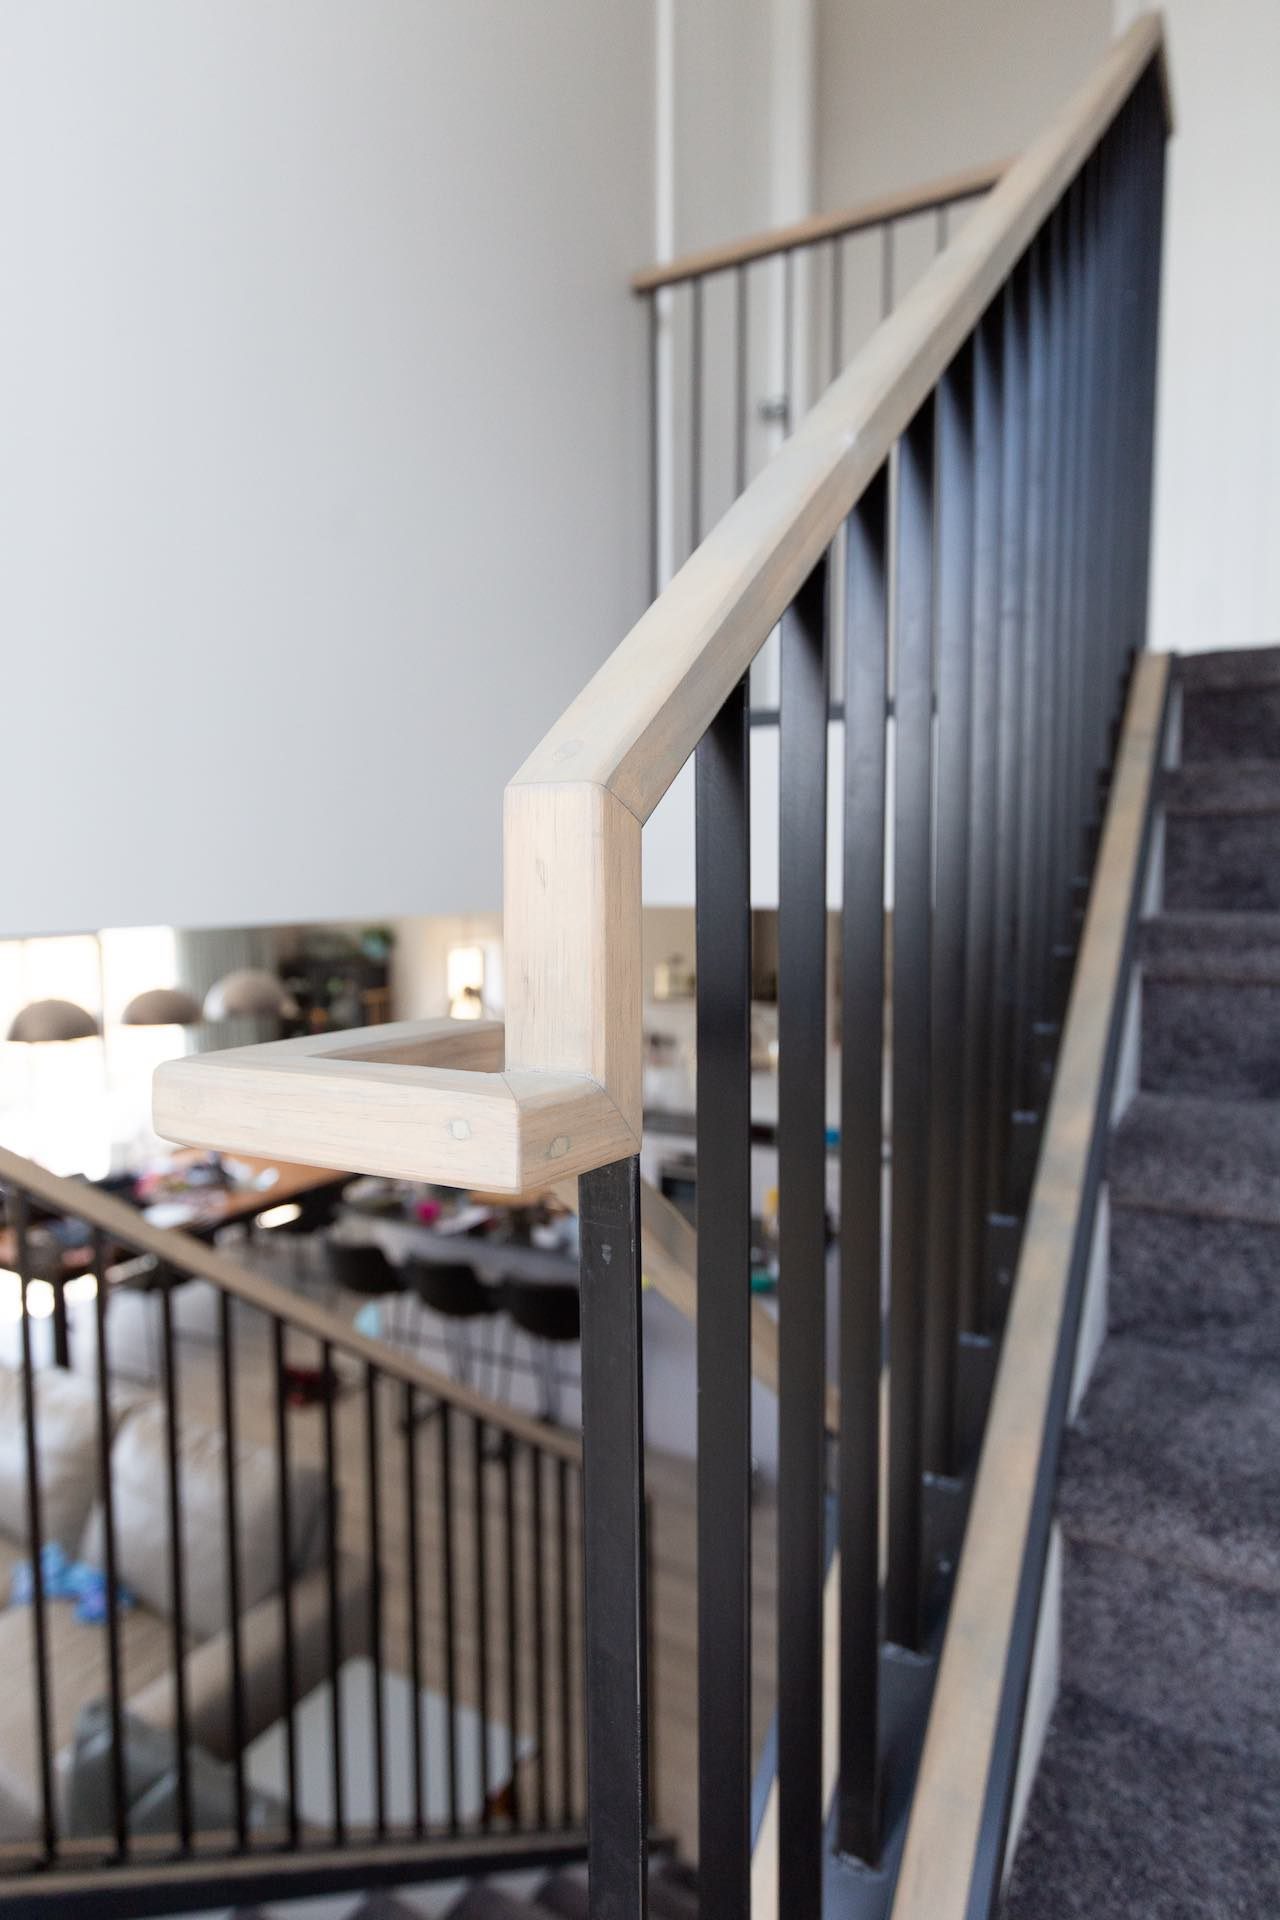 Upgrade your nz stairs on a budget with Stairworks.